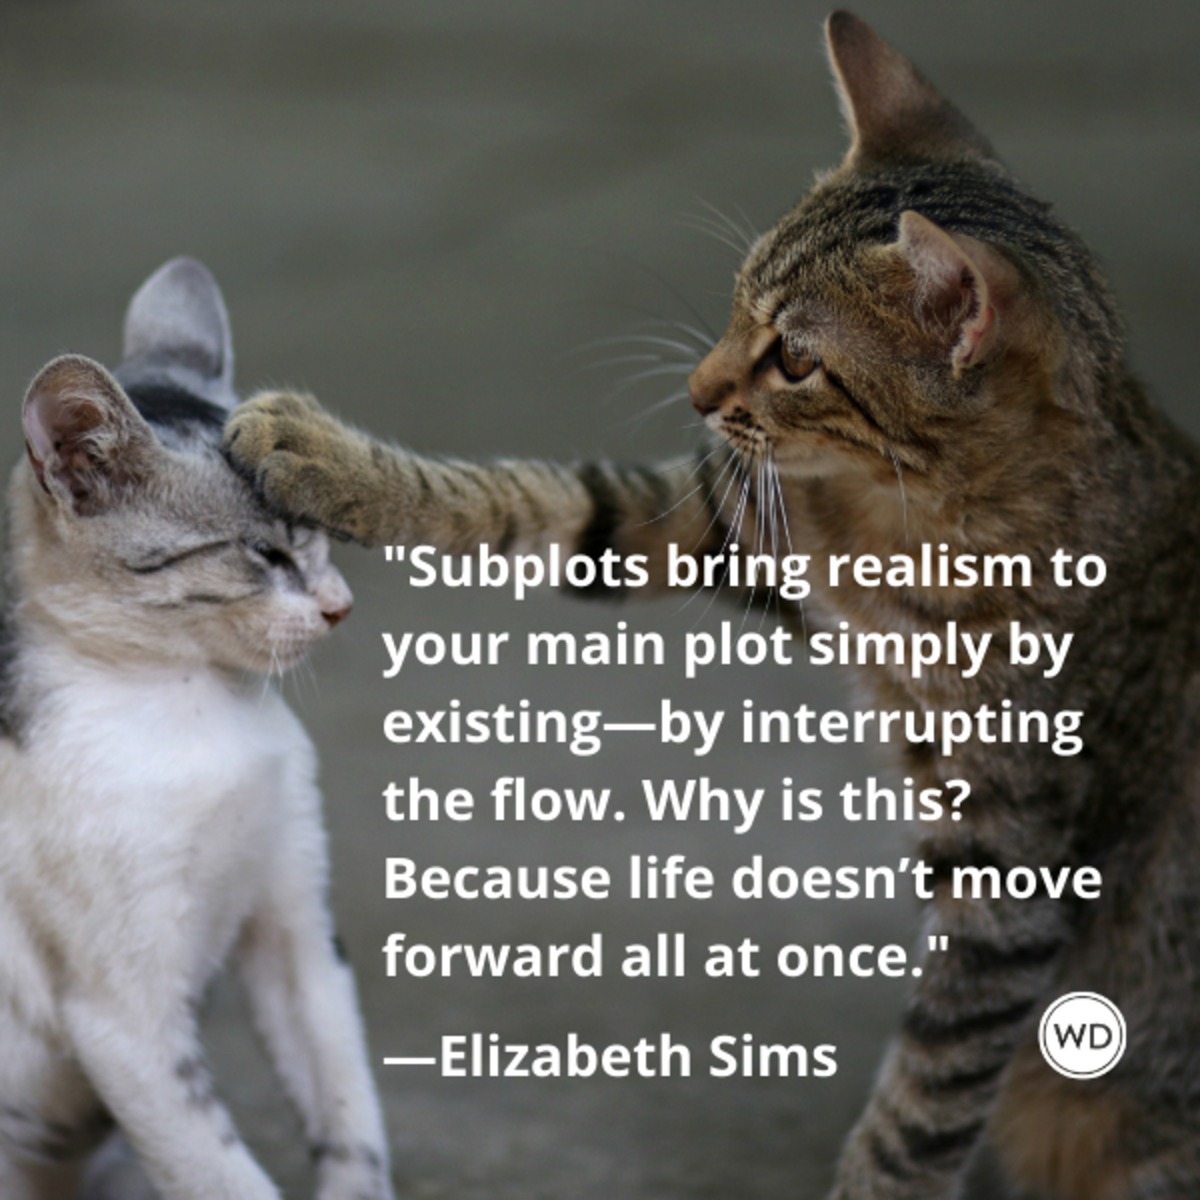 elizabeth_sims_quotes_subplots_bring_realism_to_your_main_plot_simply_by_existing_with_cats